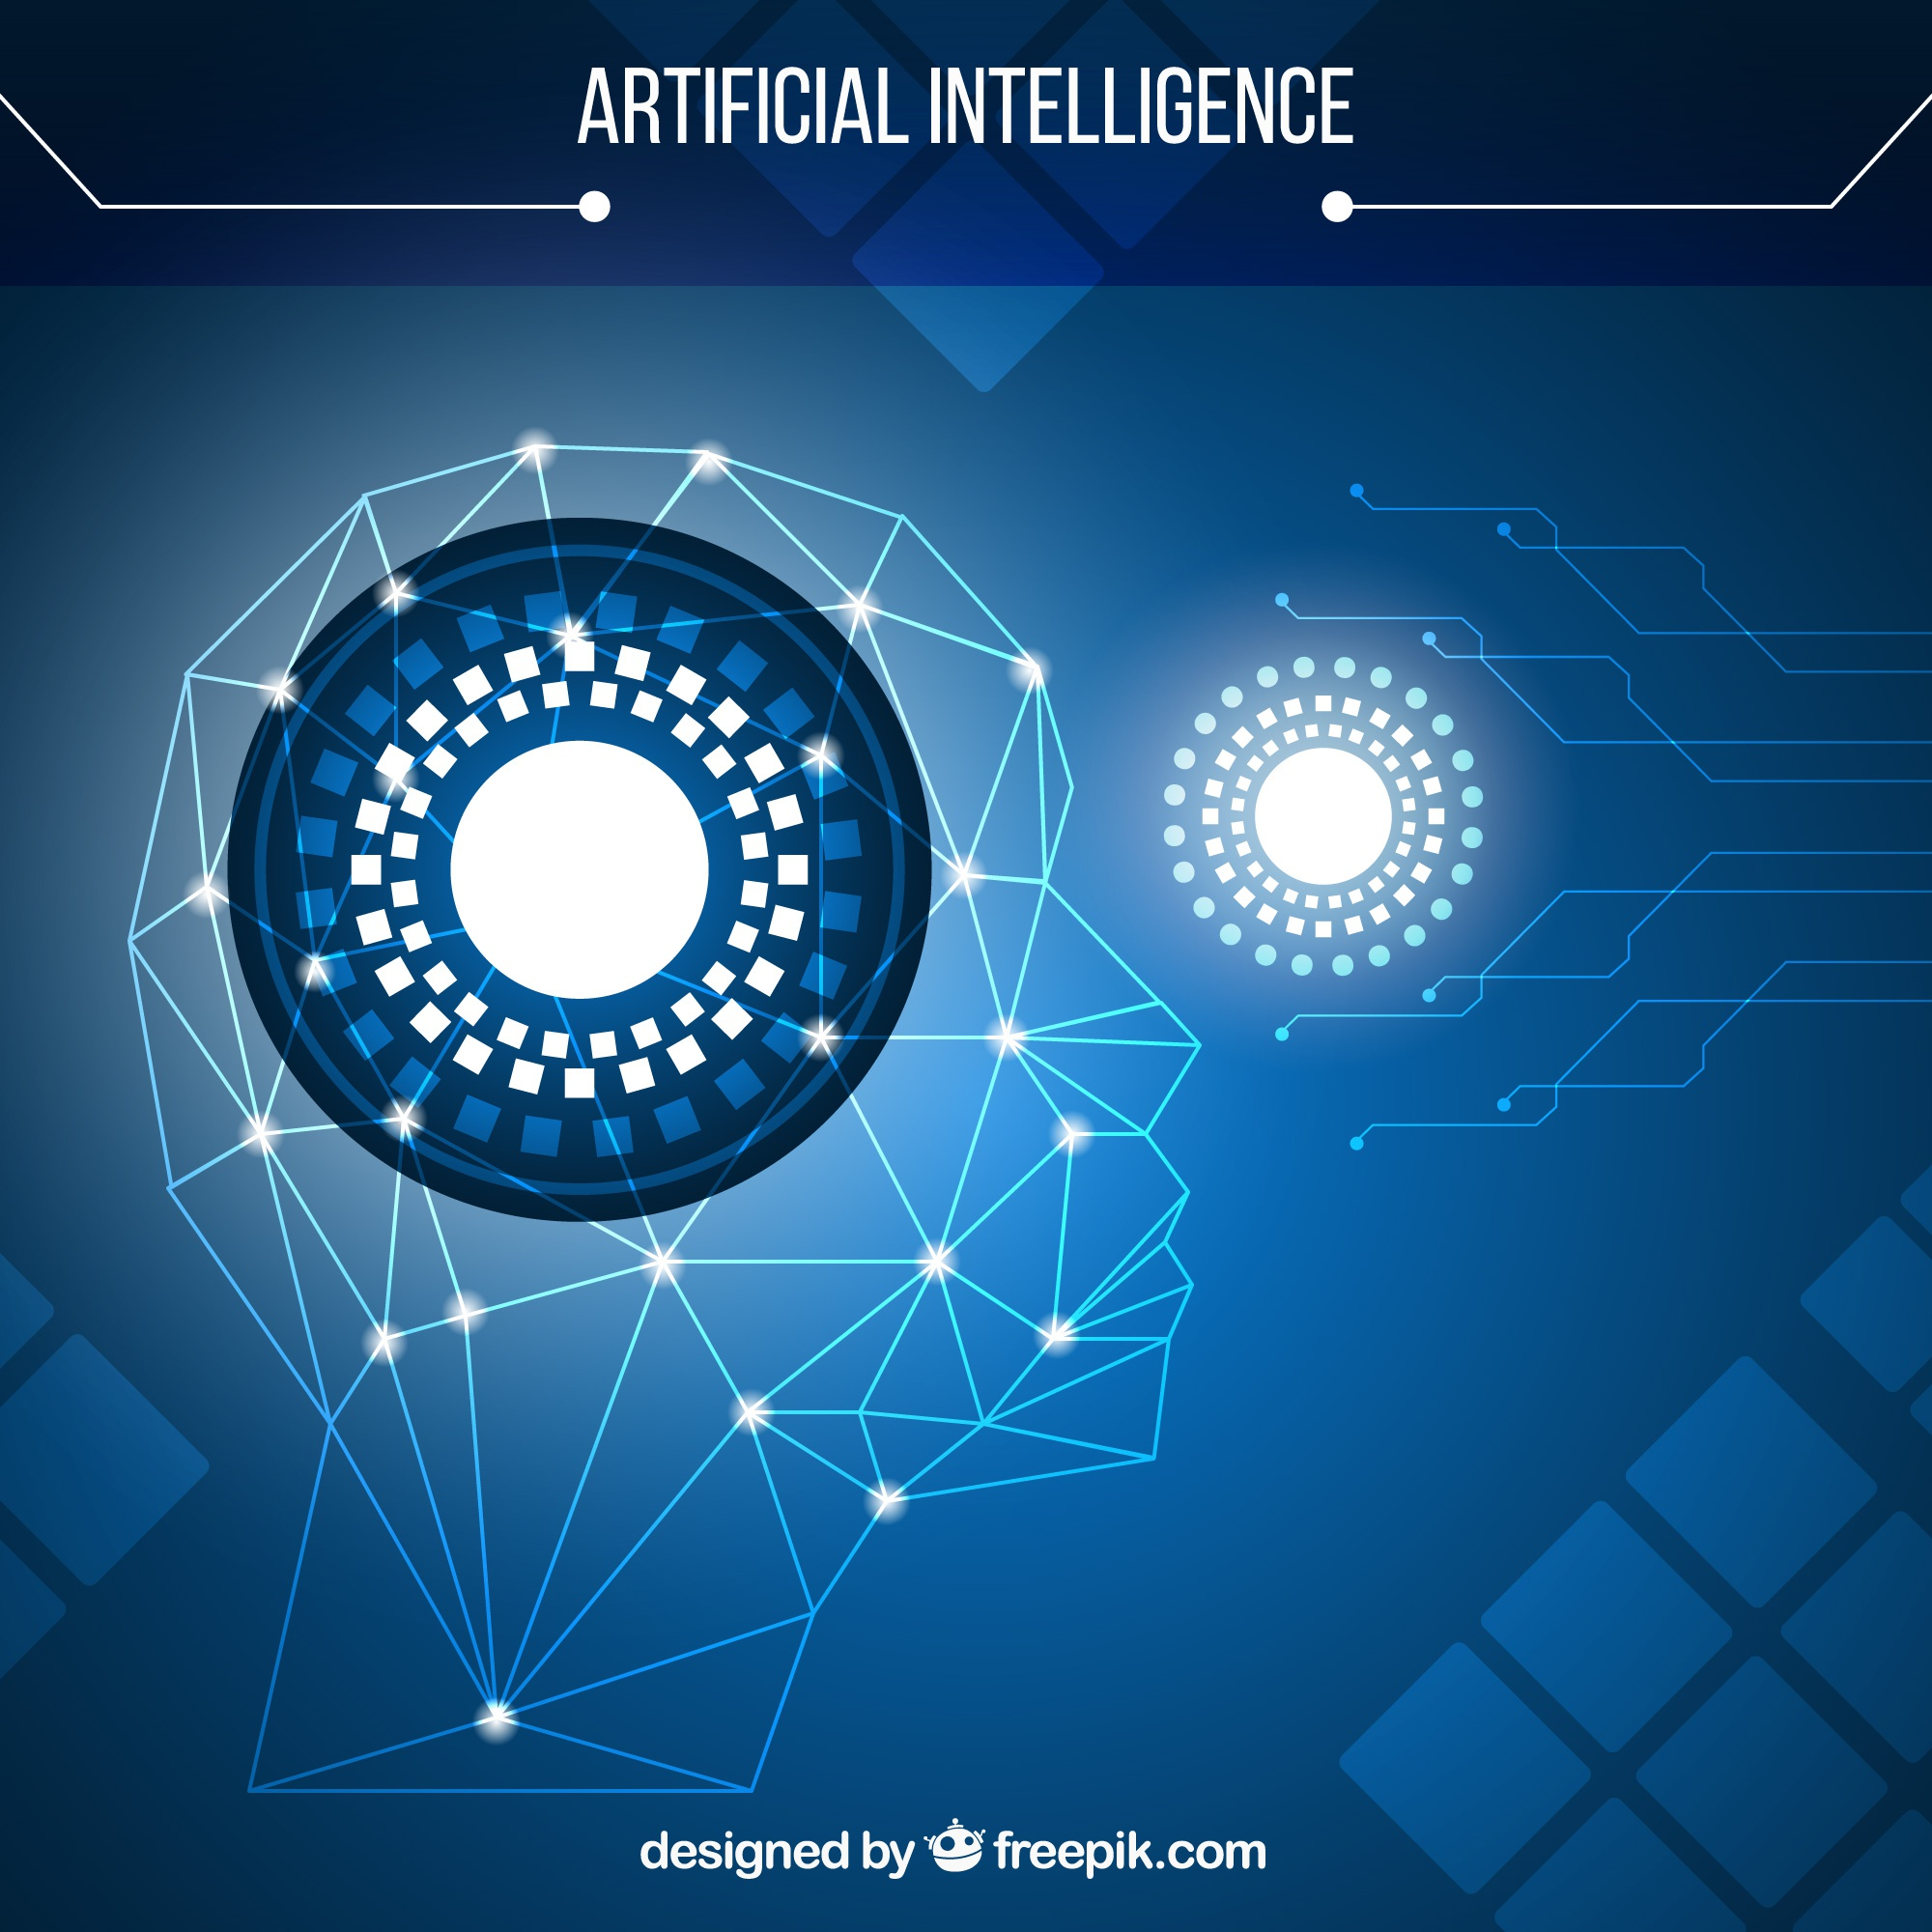 Artificial intelligence with blue background